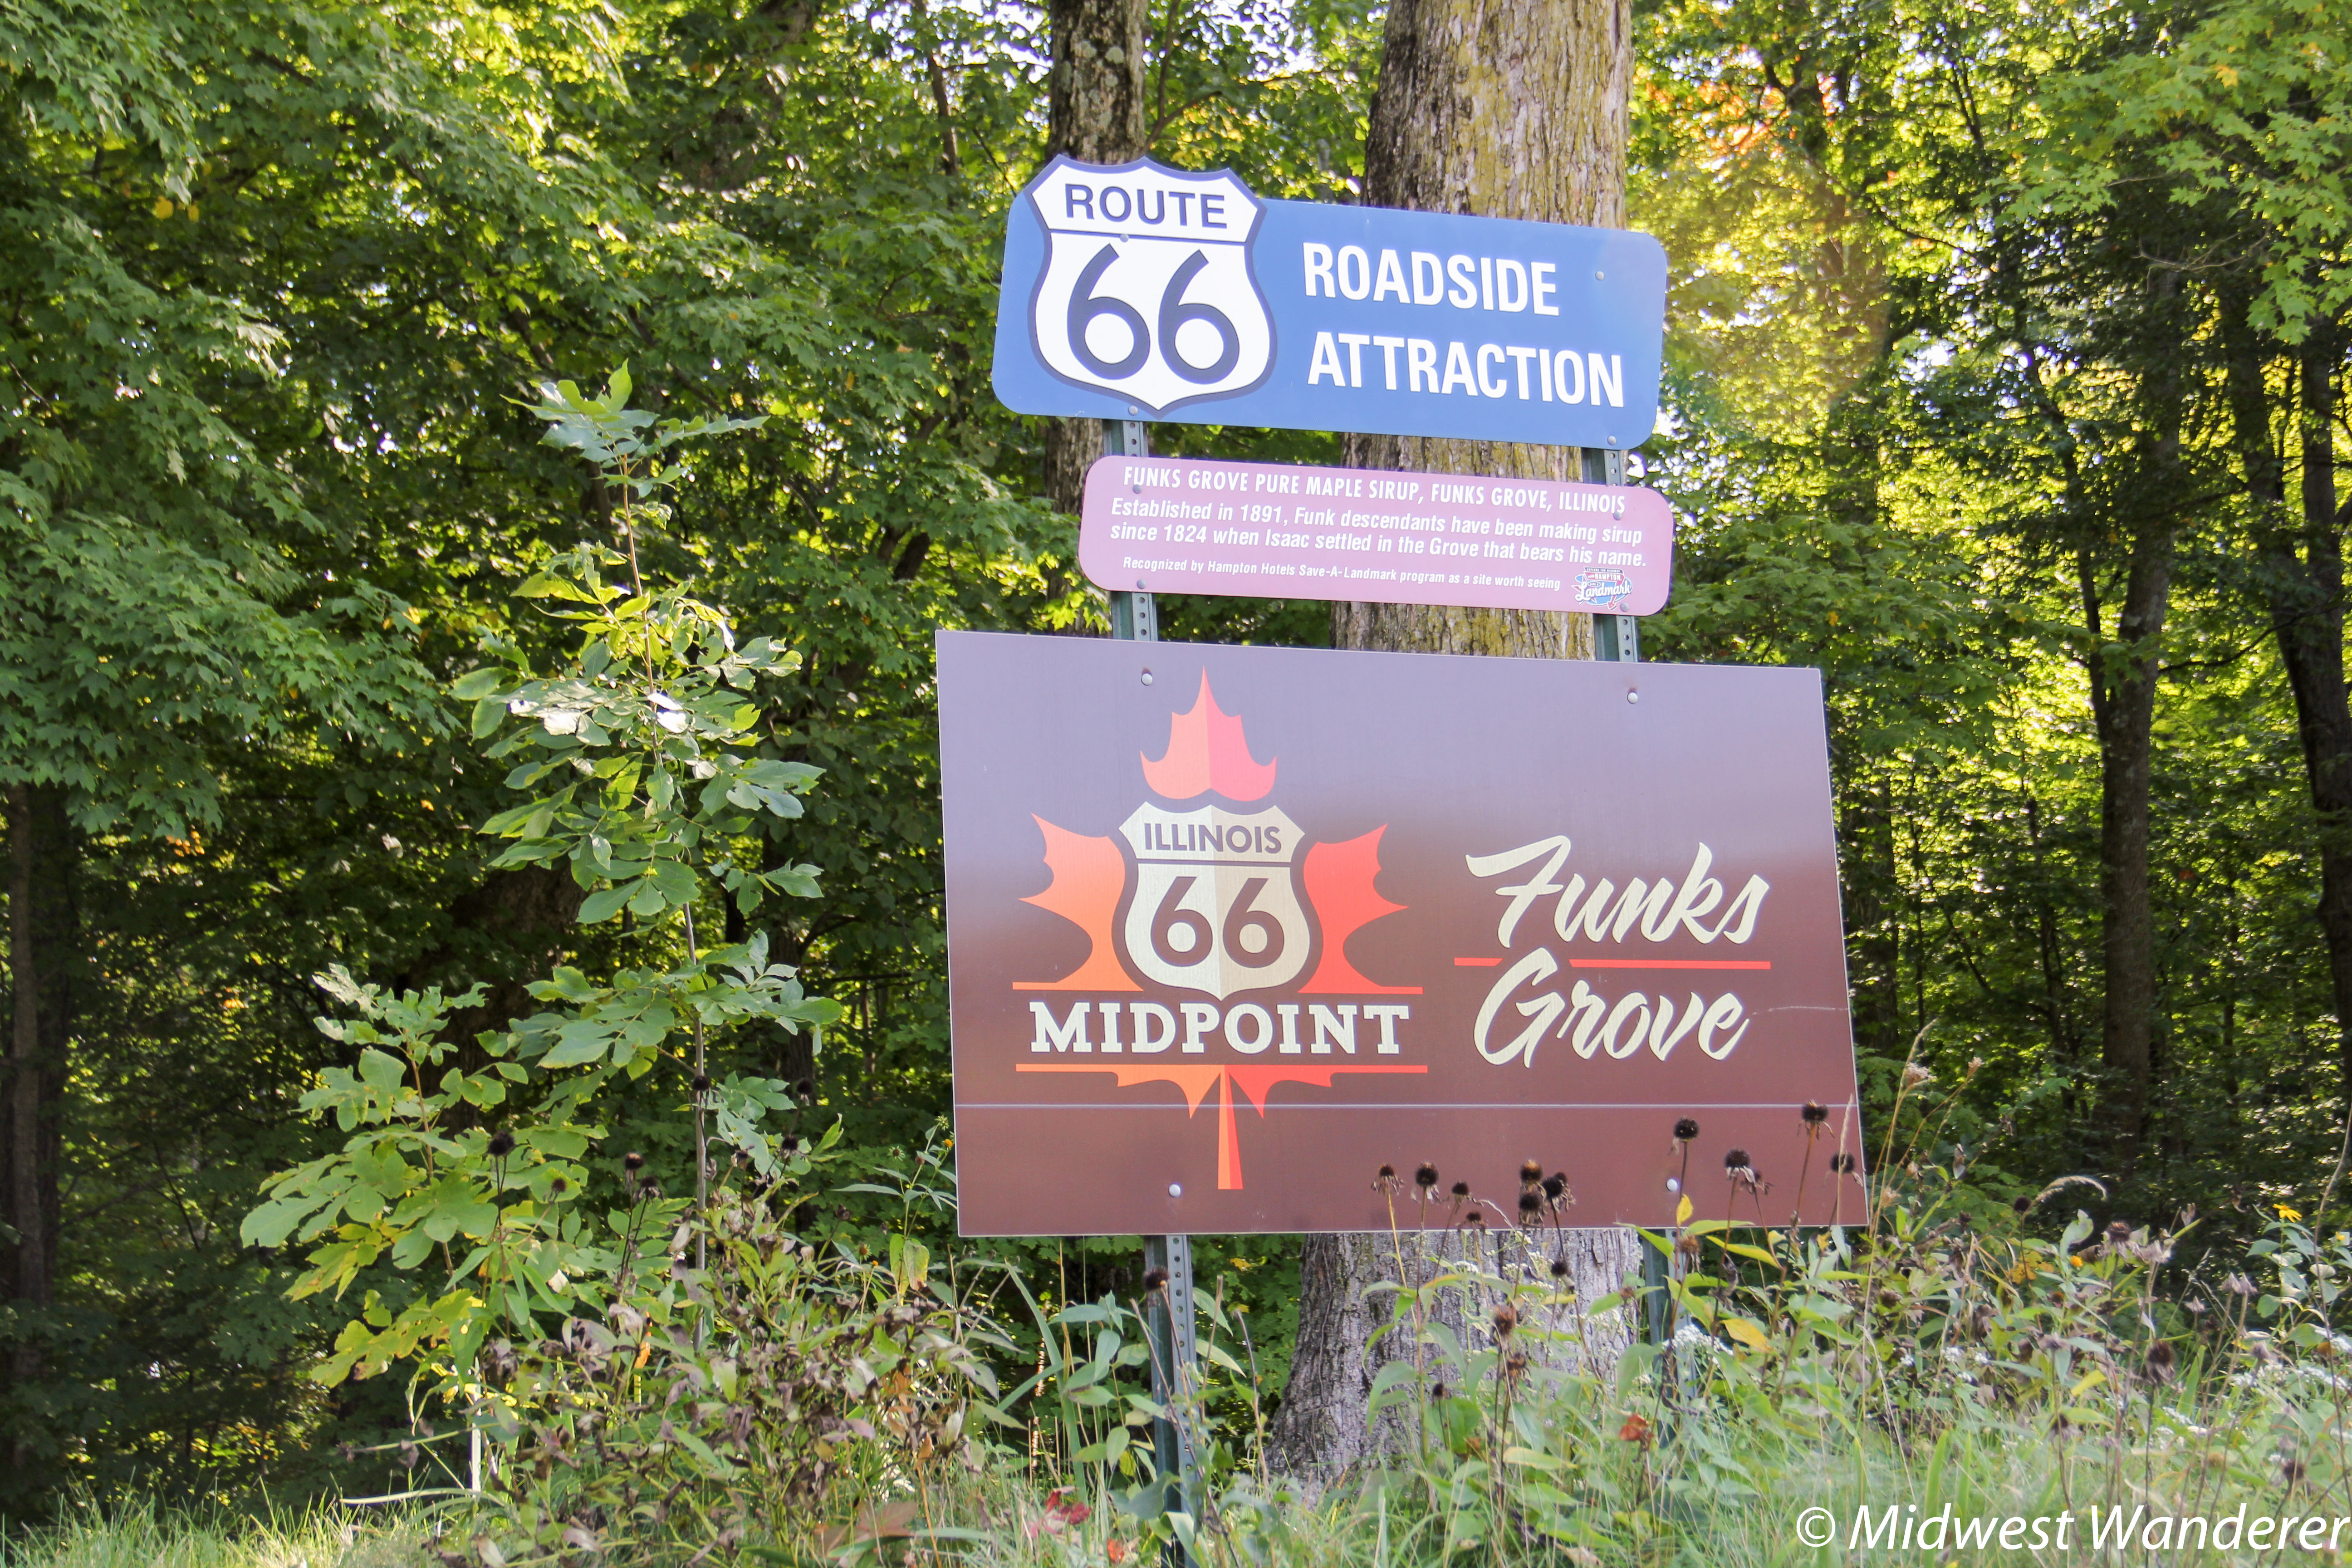 Funks Grove: Pure Maple Sirup on Route 66